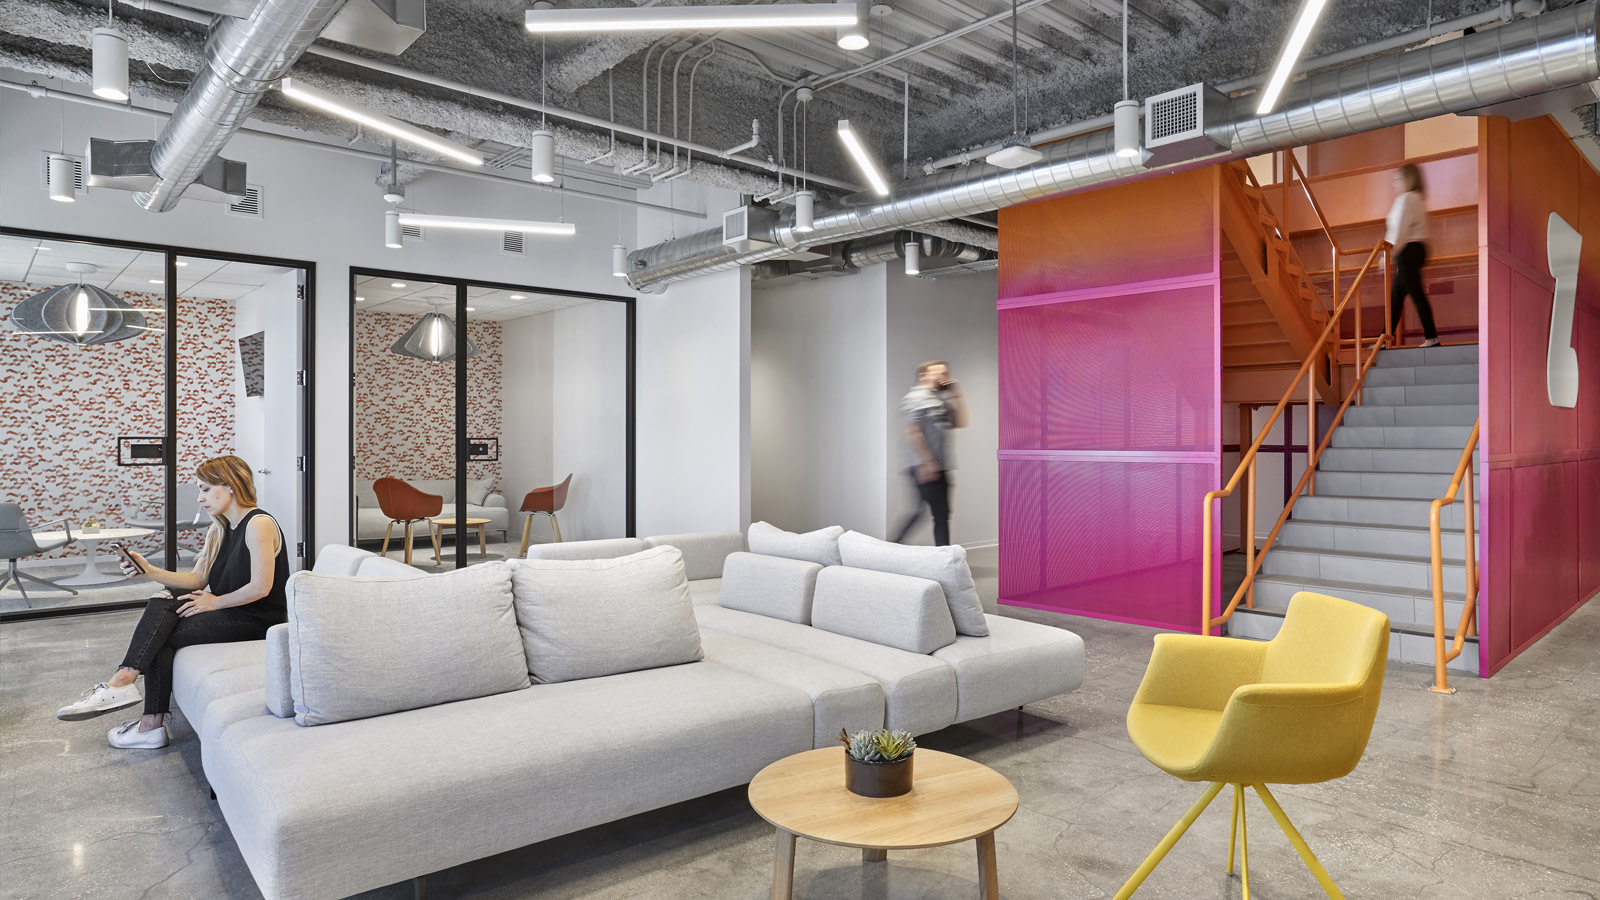 Zwift Long Beach stairwell and meeting spaces